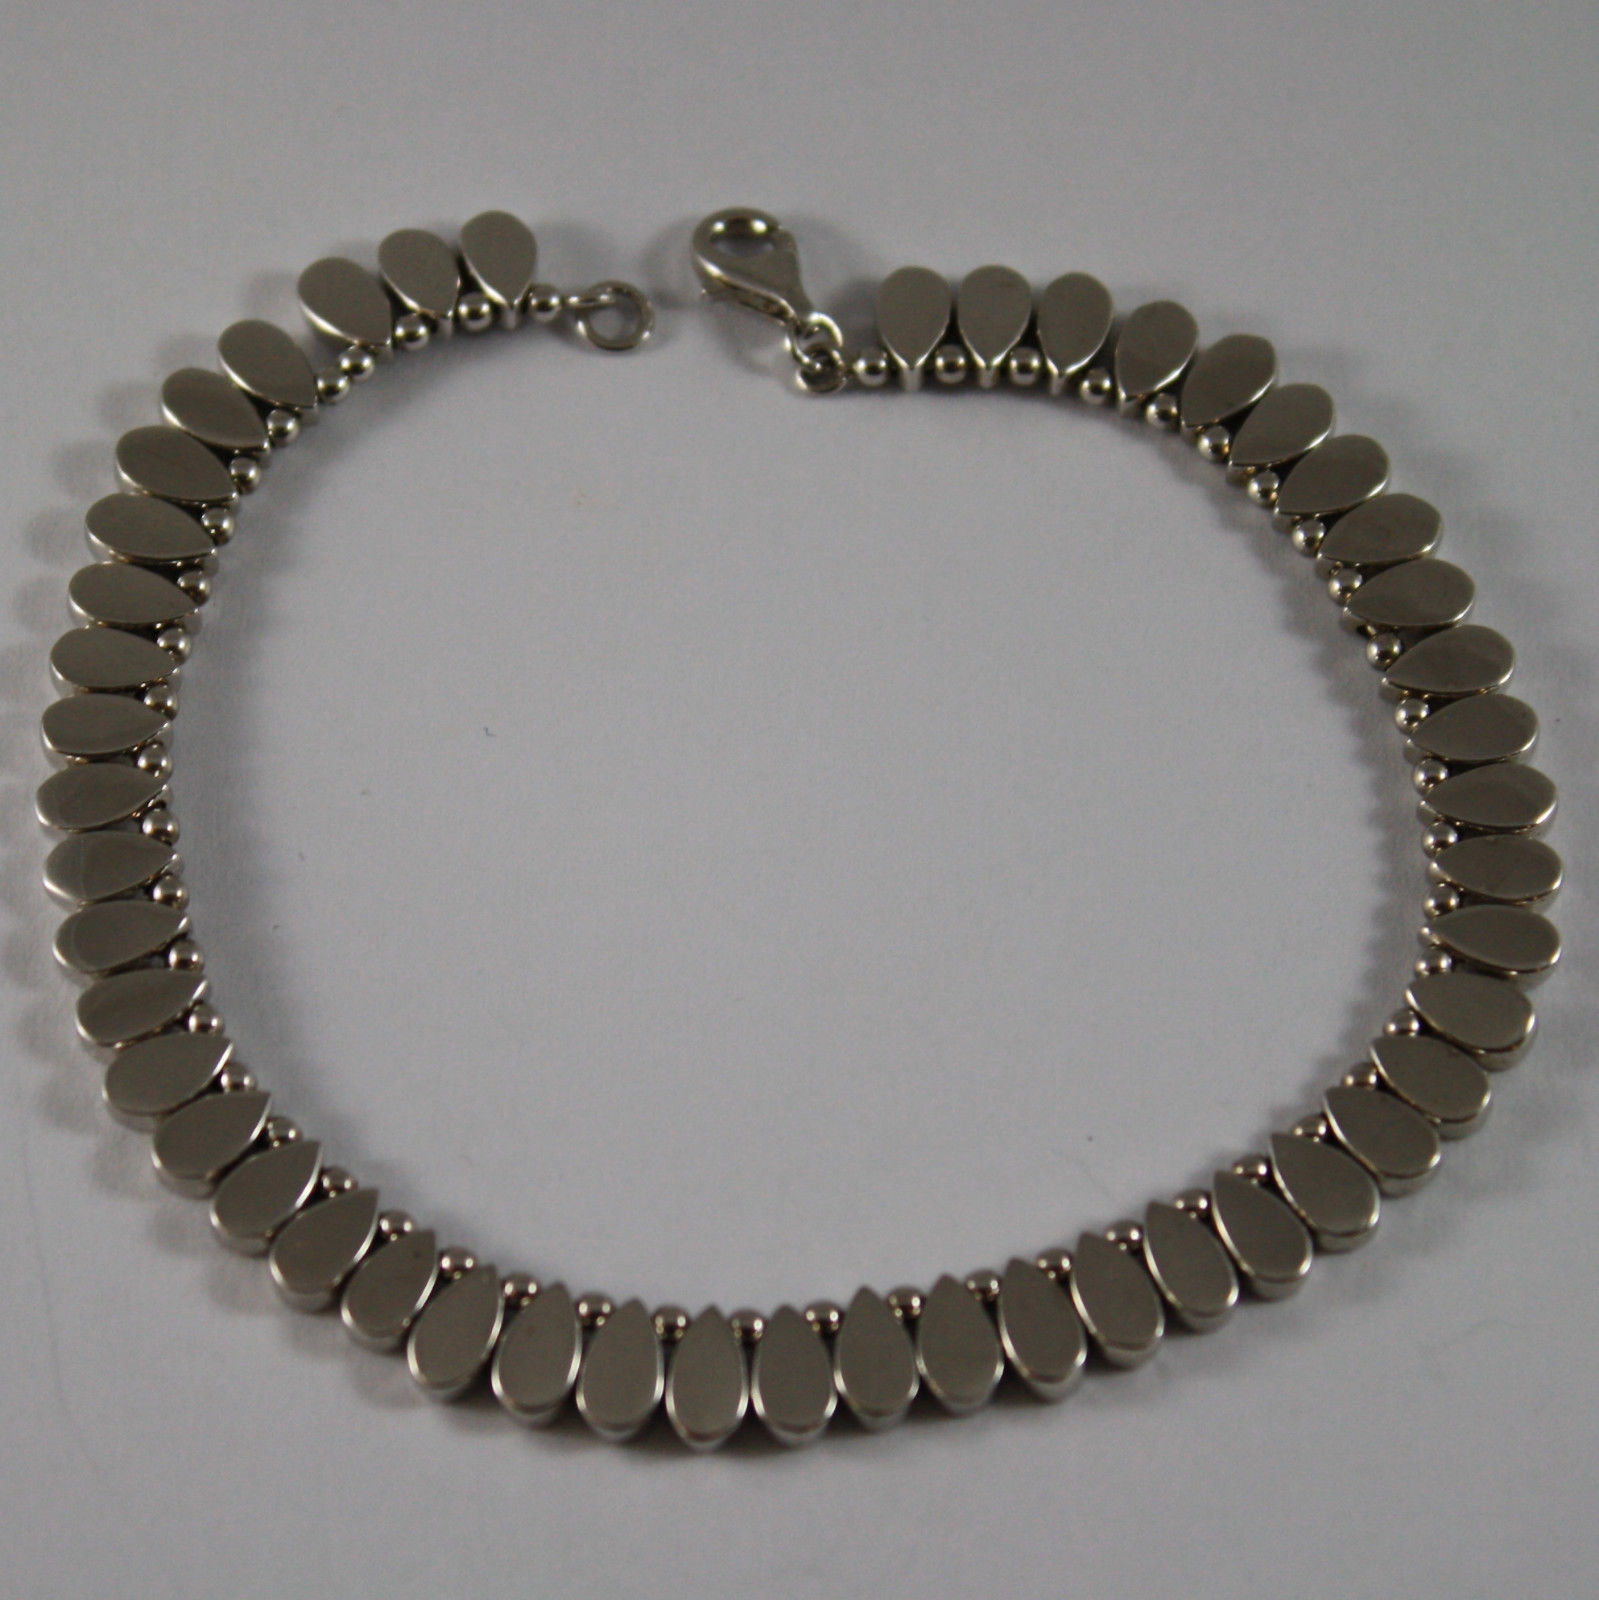 .925 RHODIUM SILVER, SEMIRIGID BRACELET WITH SMALL DROPS